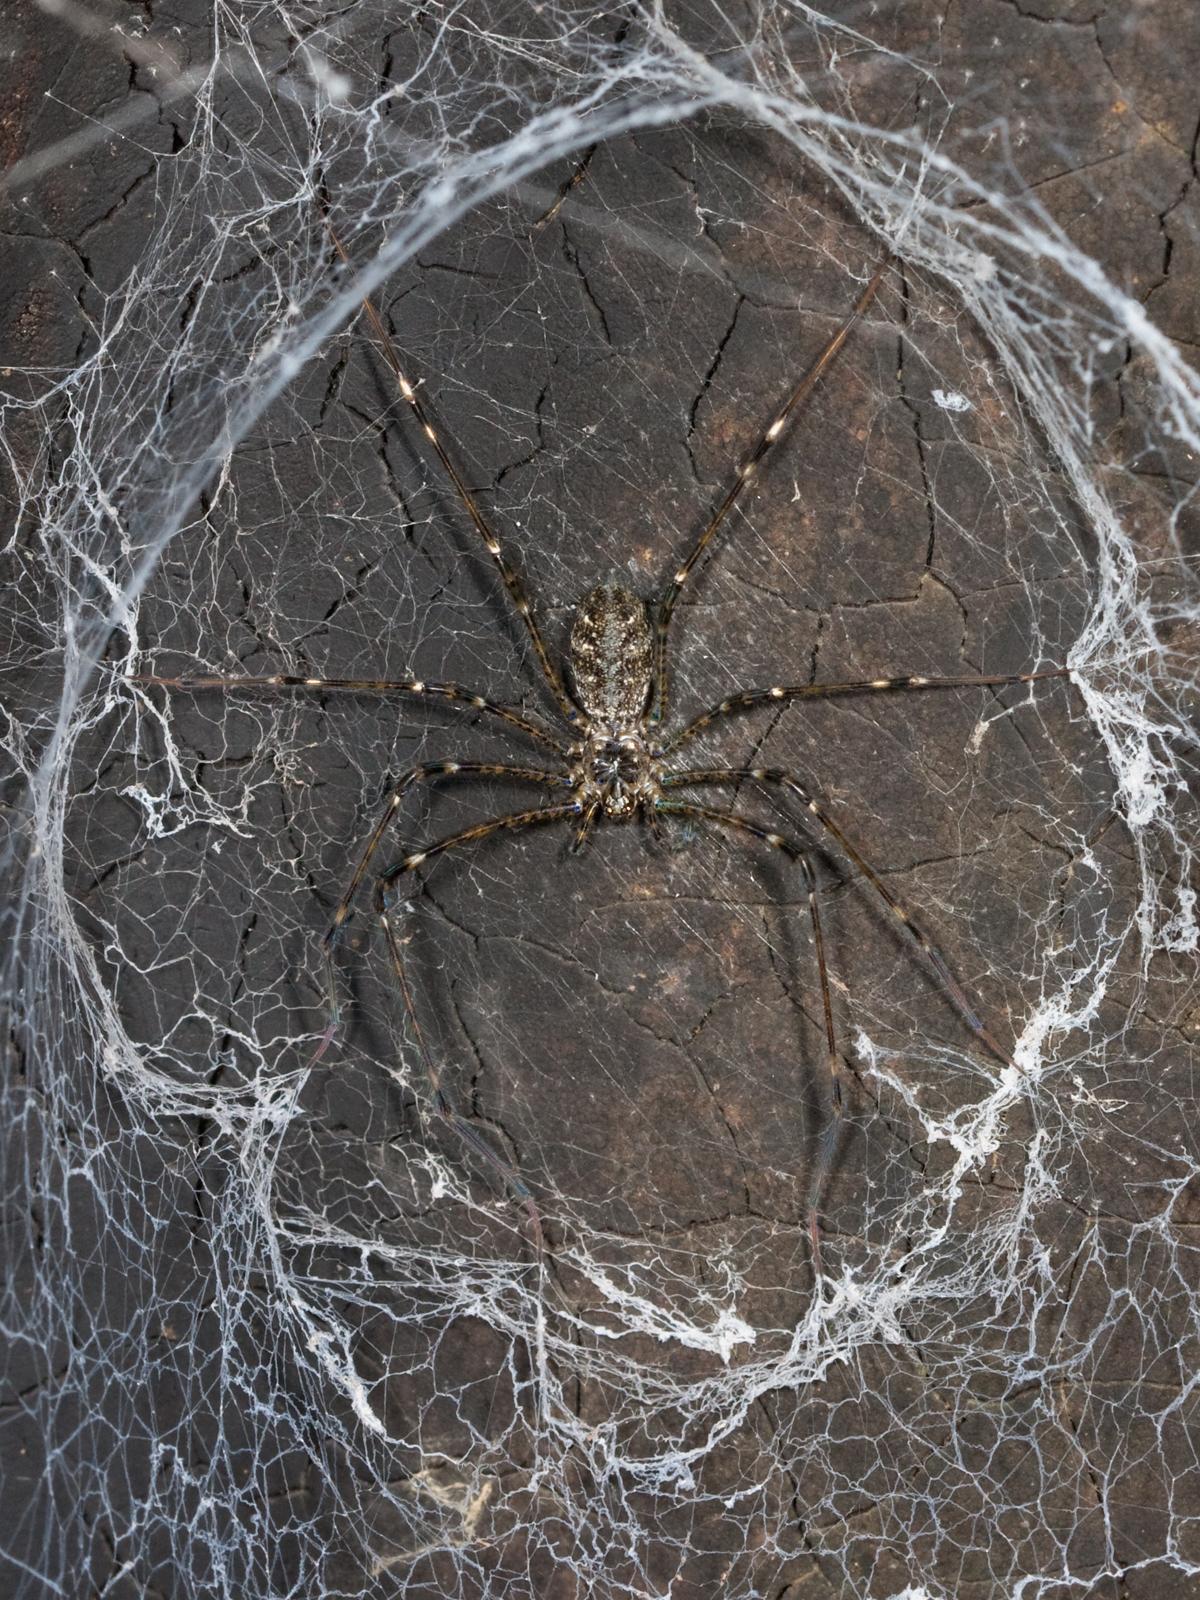 Lampshade spider wikipedia mozeypictures Image collections